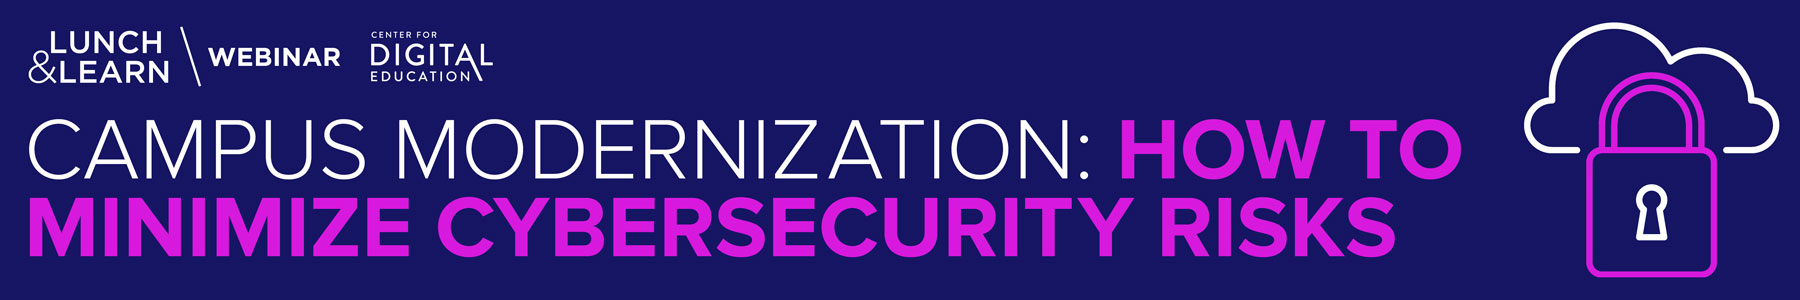 Campus Modernization: How to Minimize Cybersecurity Risks